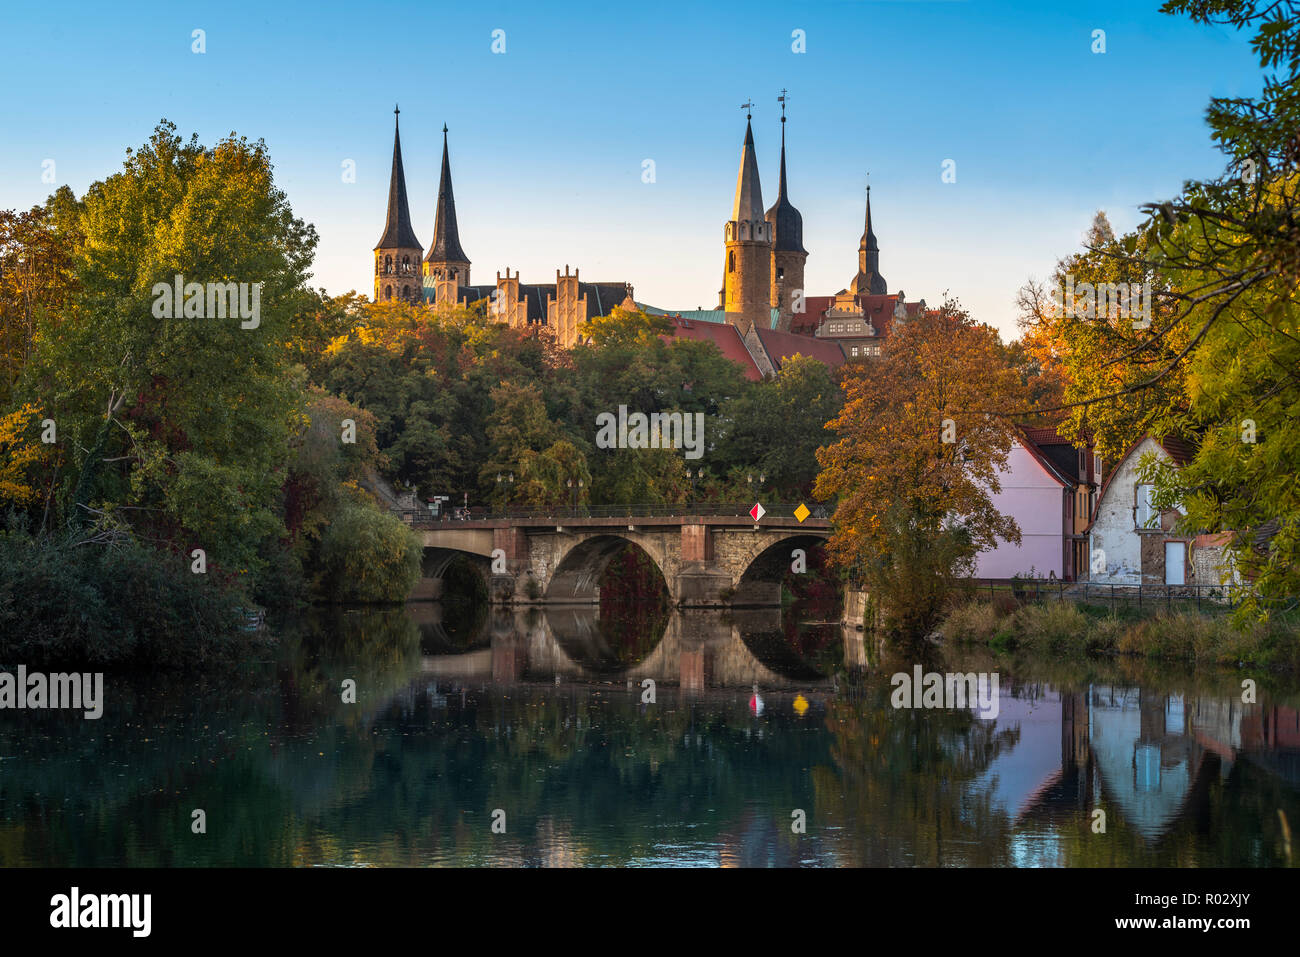 Merseburg, castle and cathedral in autumn next to the river Saale, Saxony-Anhalt, Germany | Merseburg, Schloss und Dom im Herbst, Sachsen-Anhalt - Stock Image